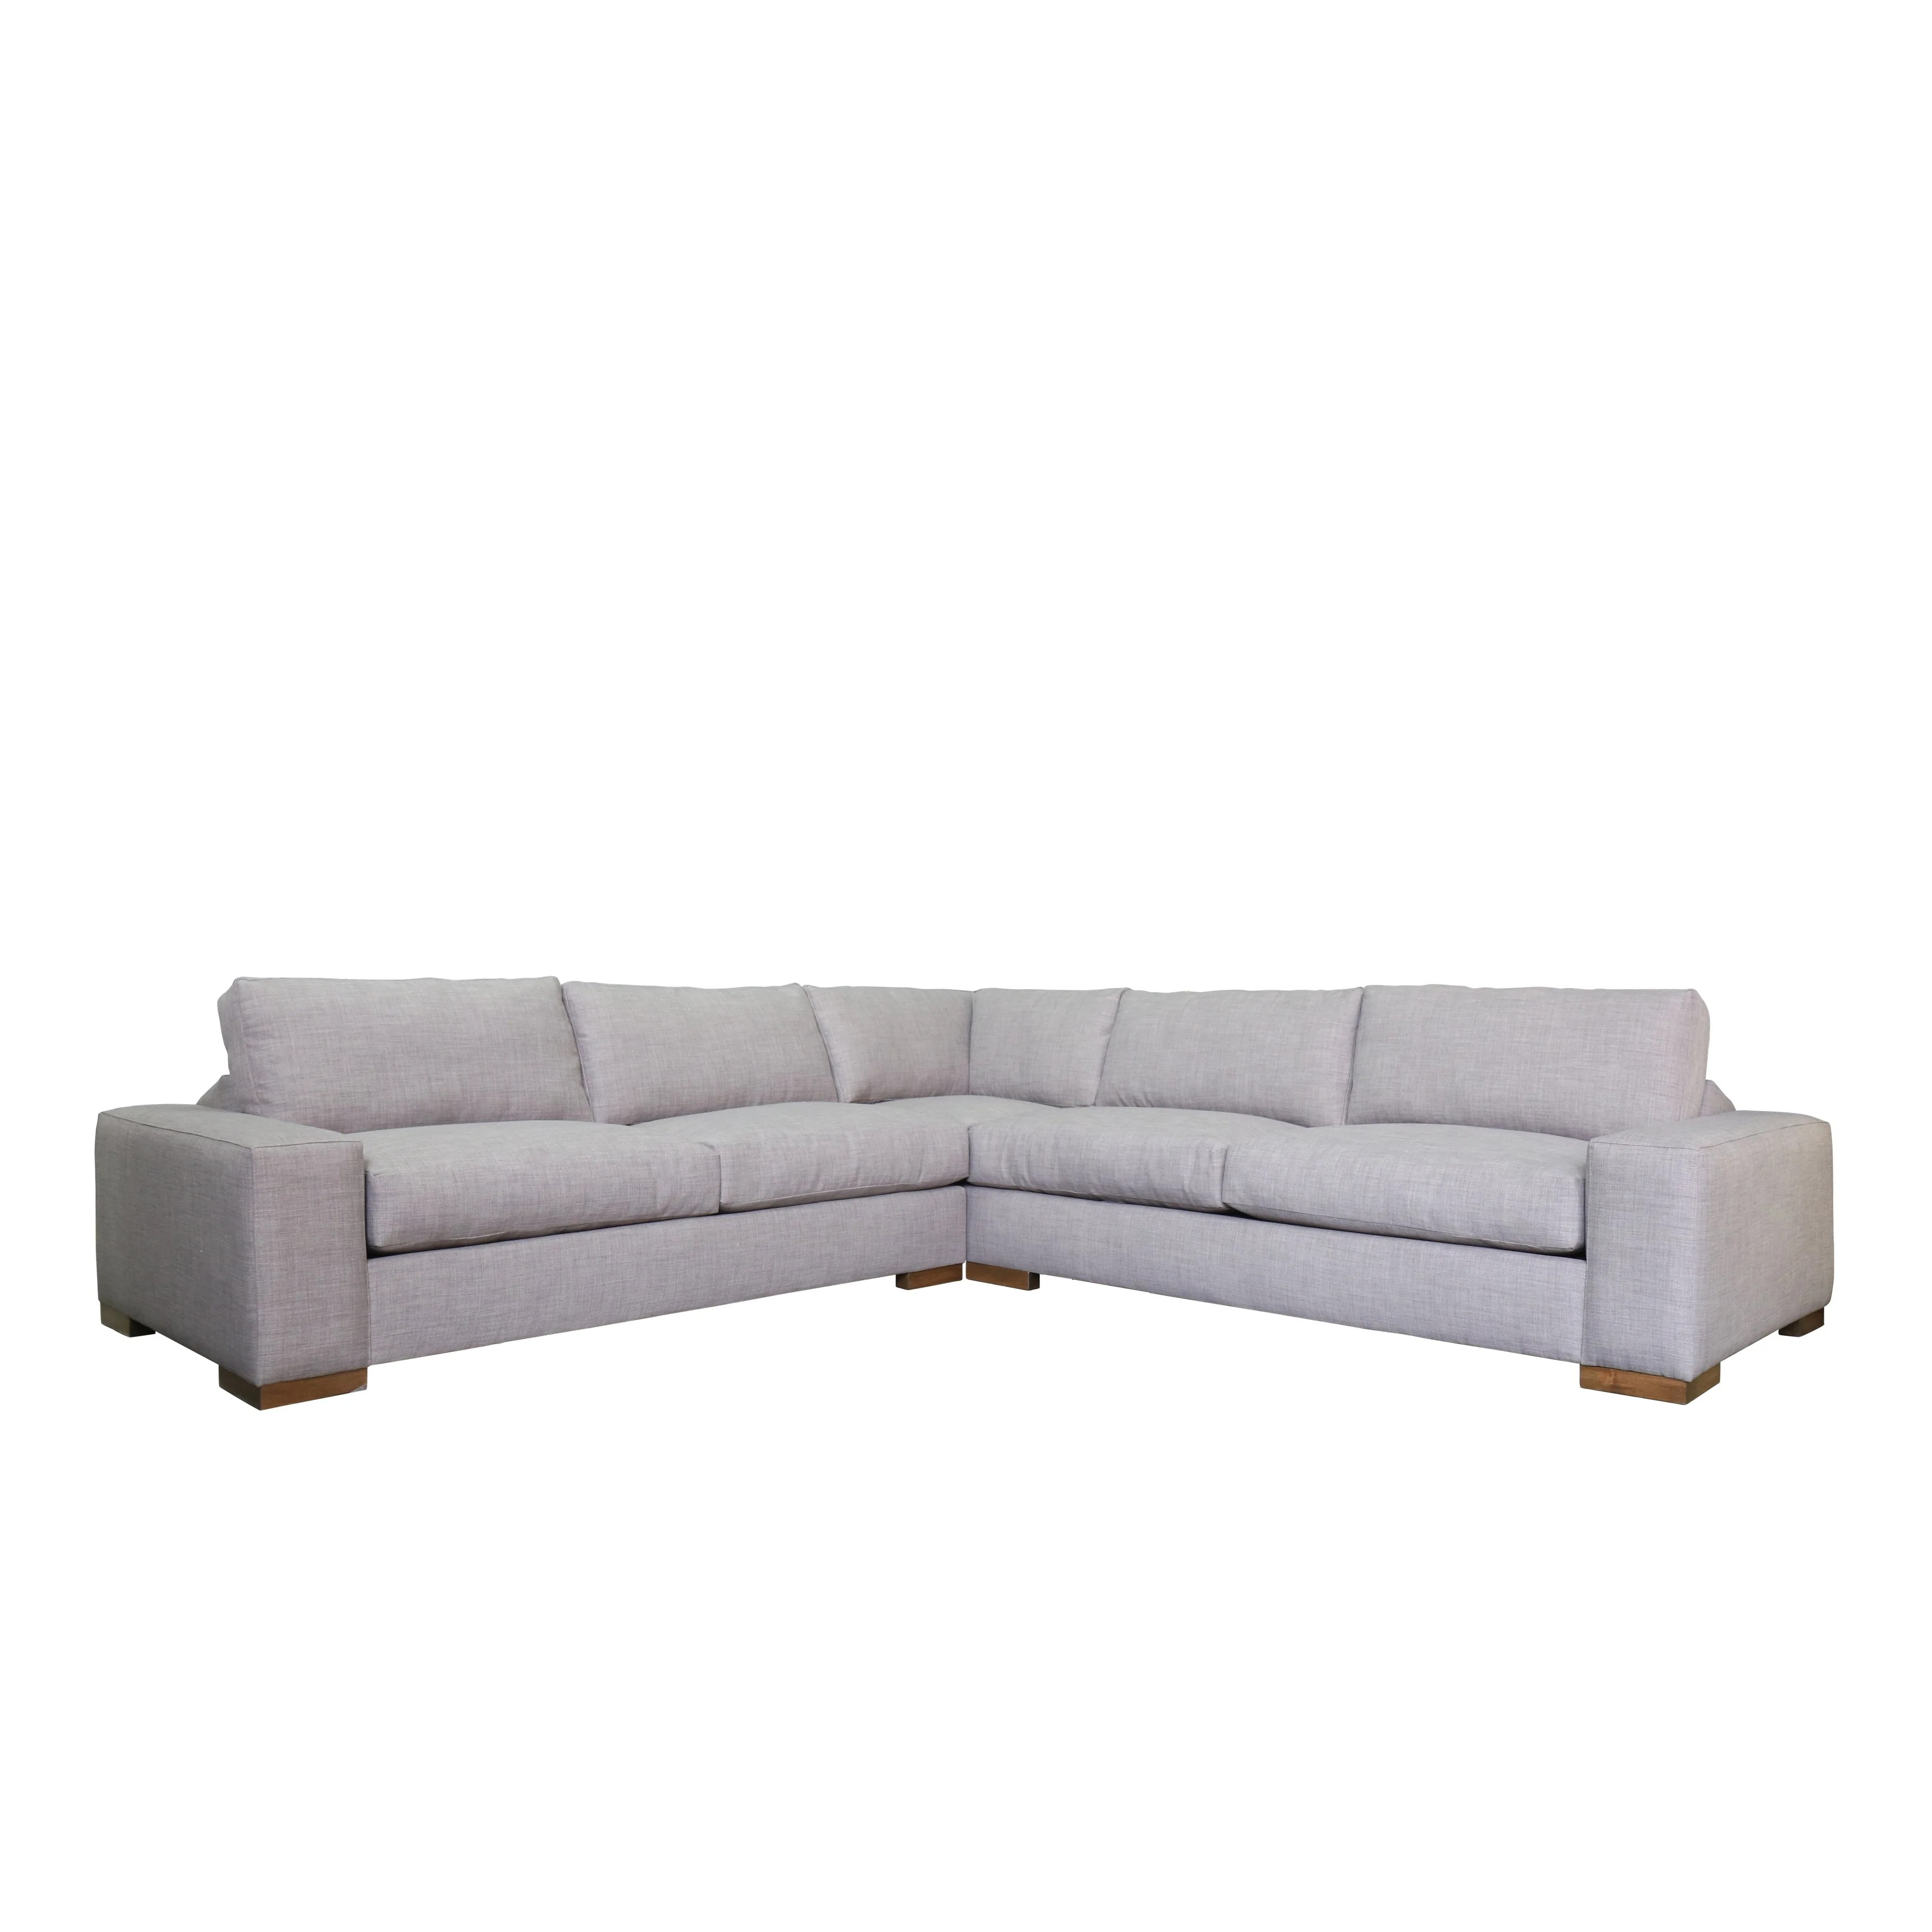 Wilson Modern Sectional Sofa With Feather And Down On Sale Overstock 14595061